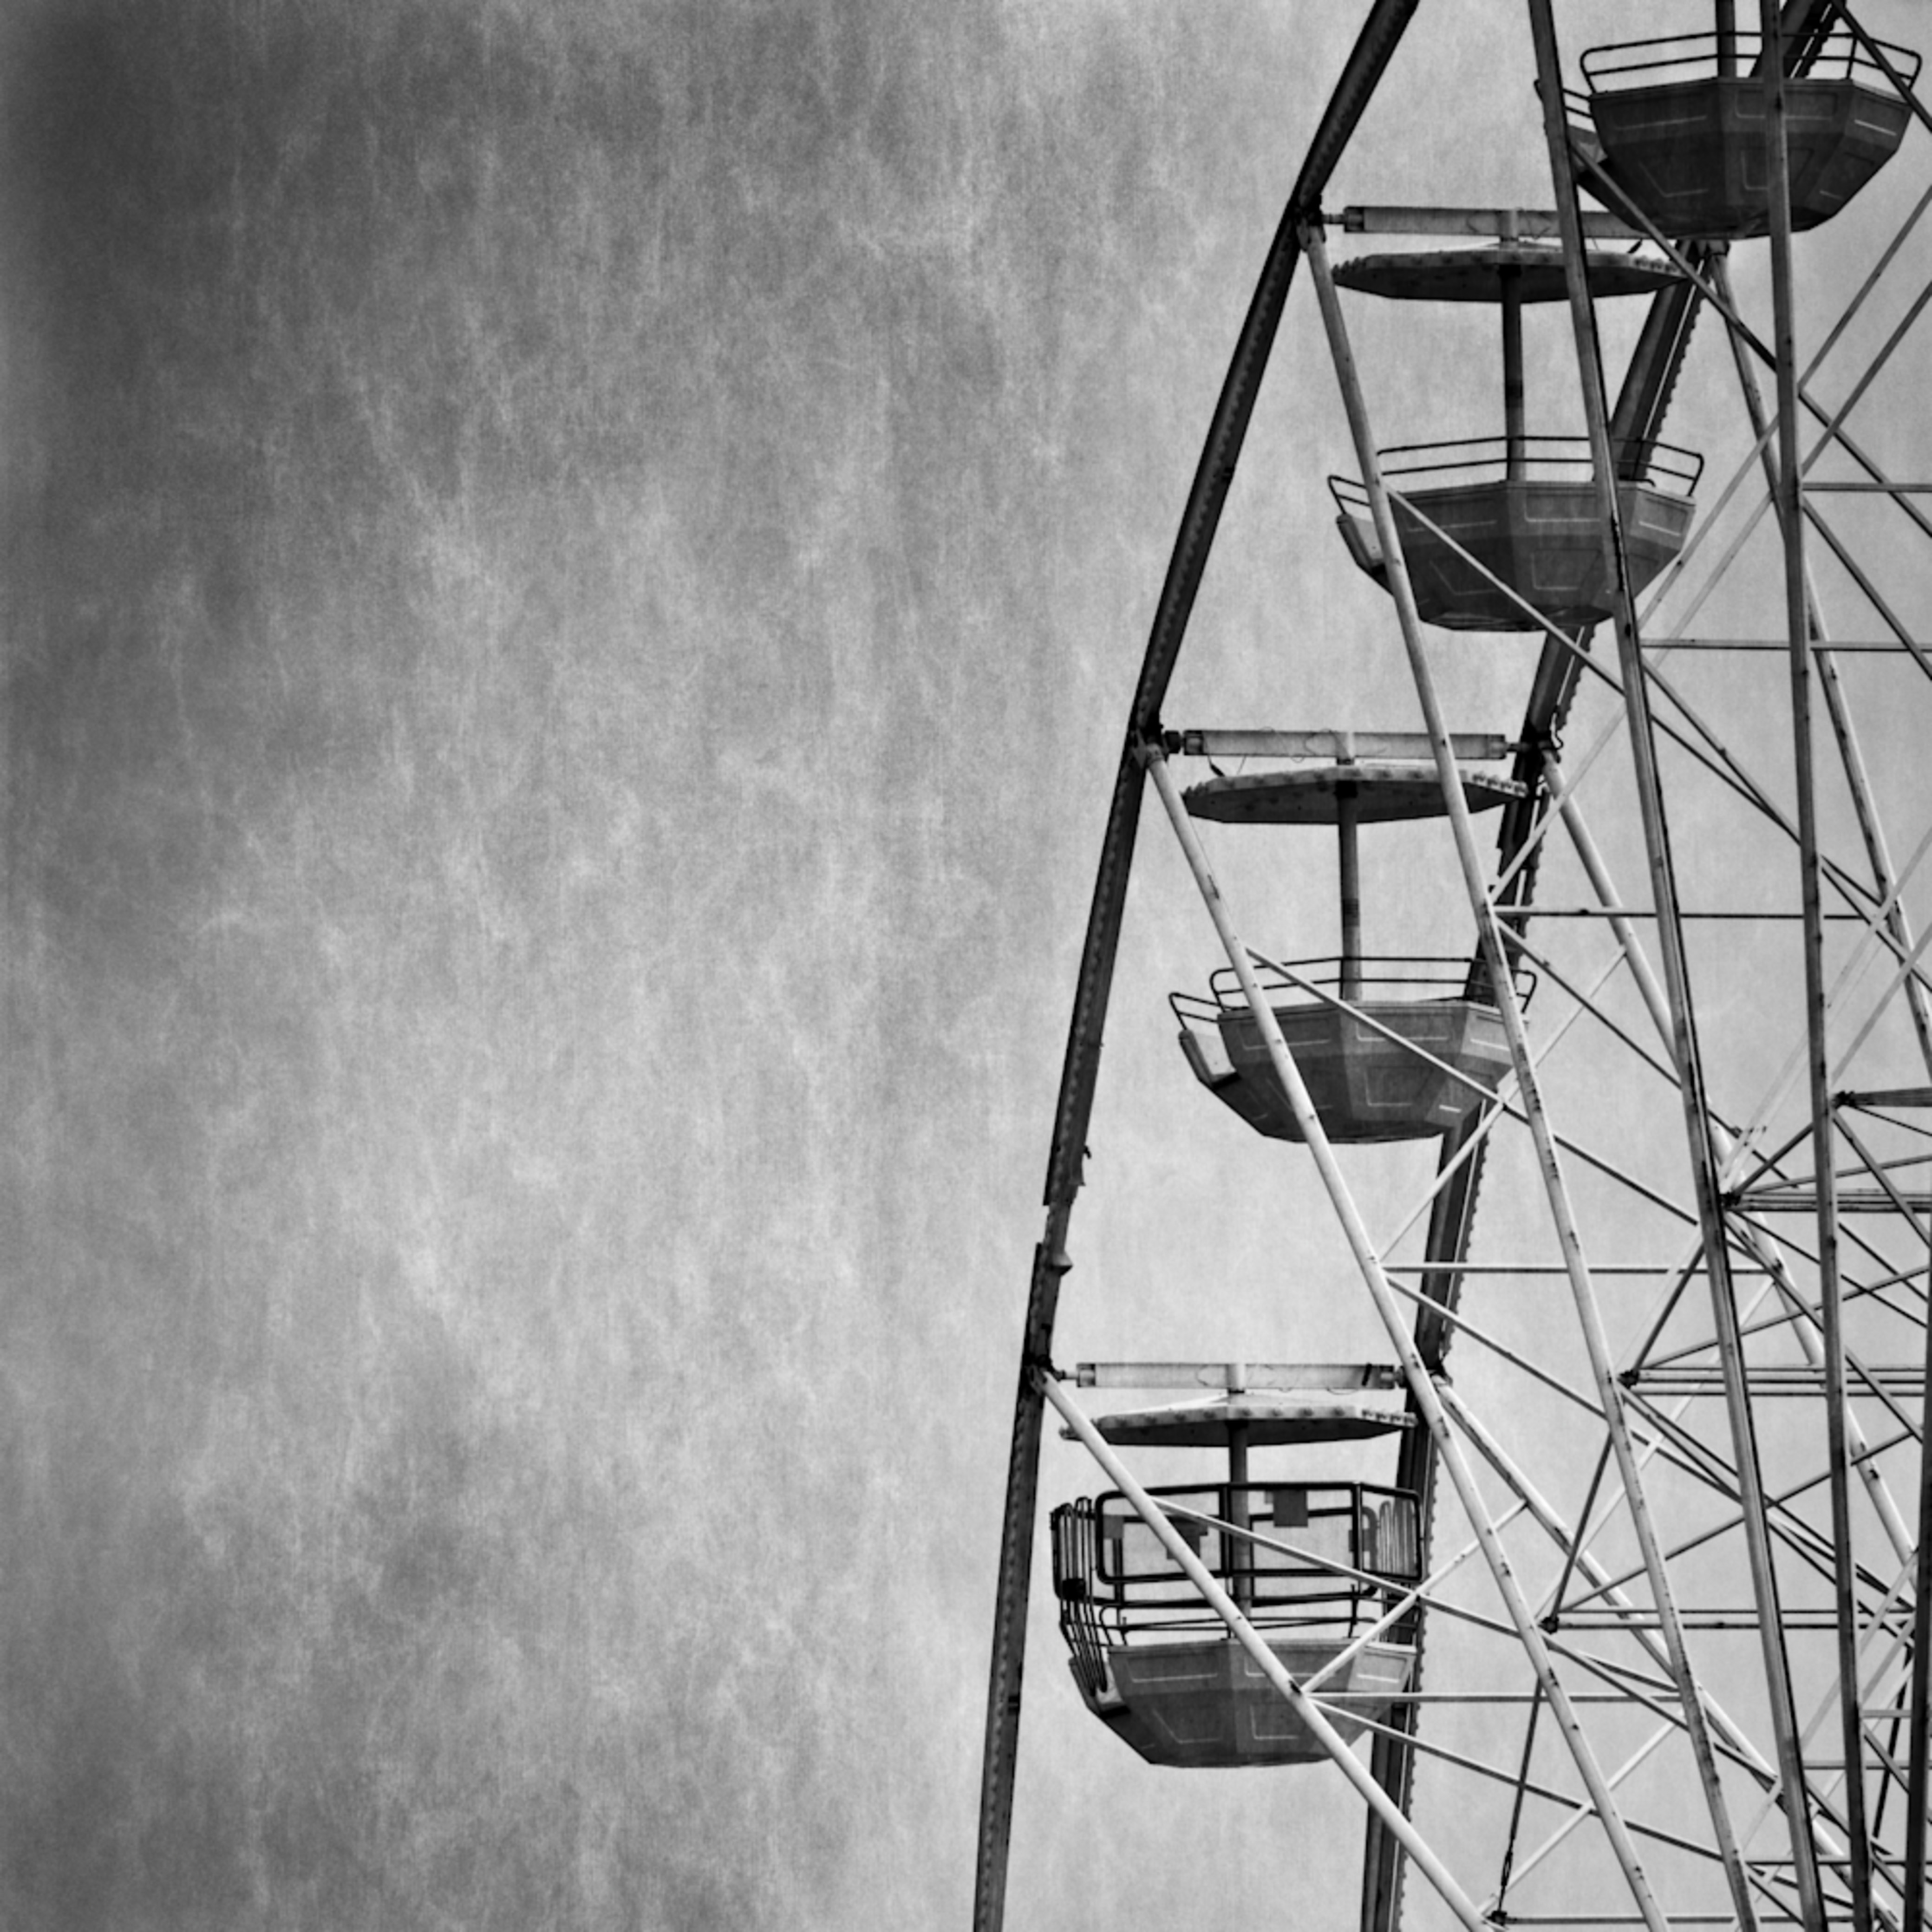 Ferris wheel at bournemouth cpdaco